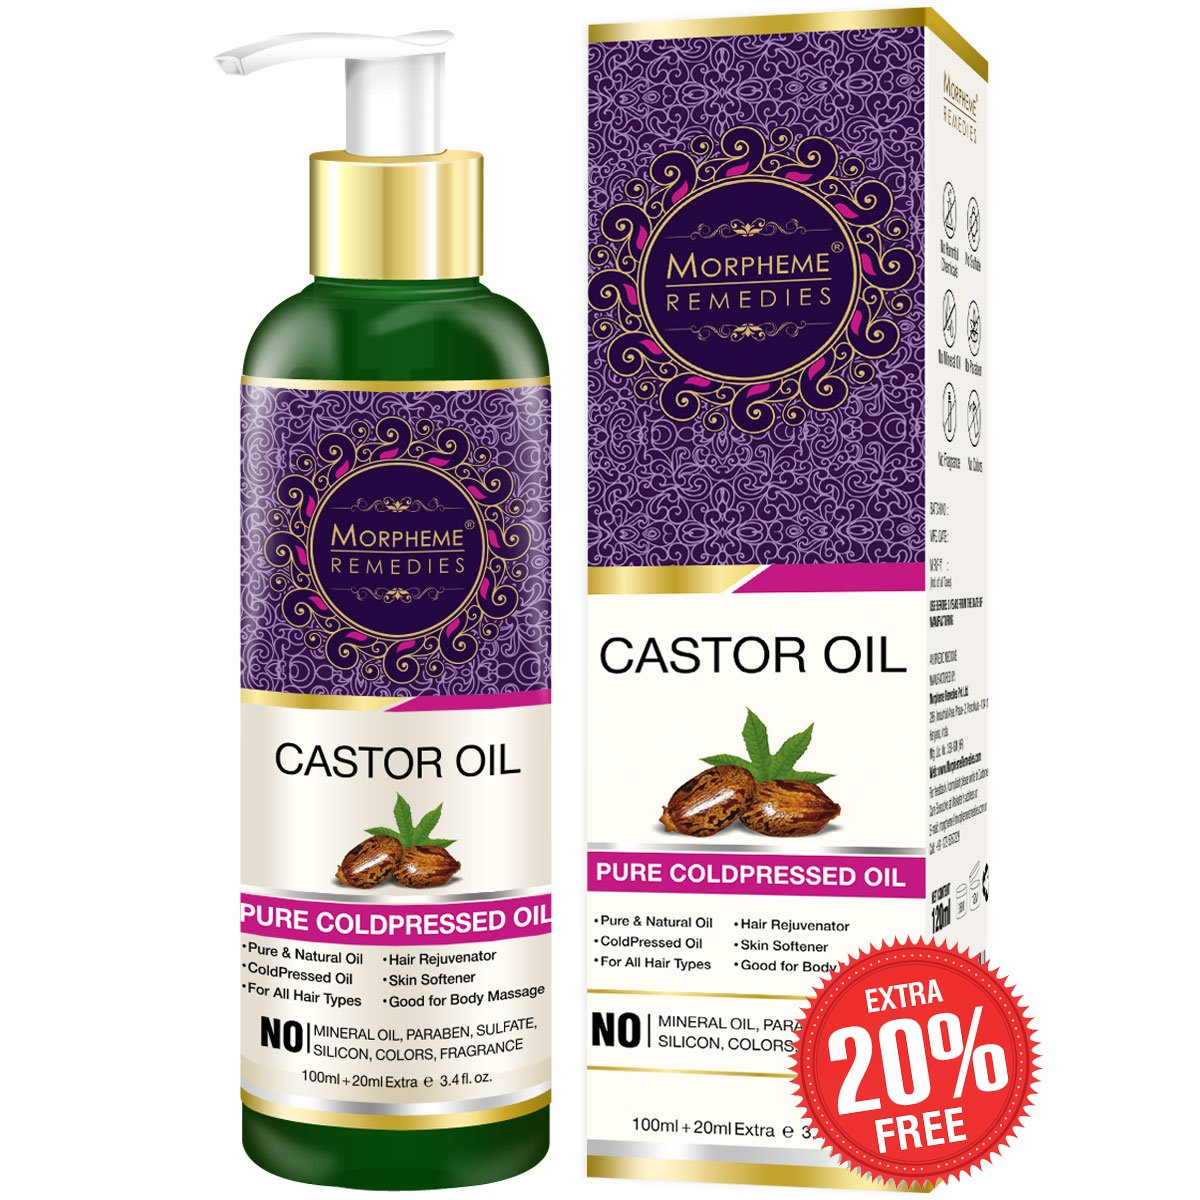 Morpheme Remedies Pure Cold Pressed Castor Oil for Hair and Skin, 120ml product image